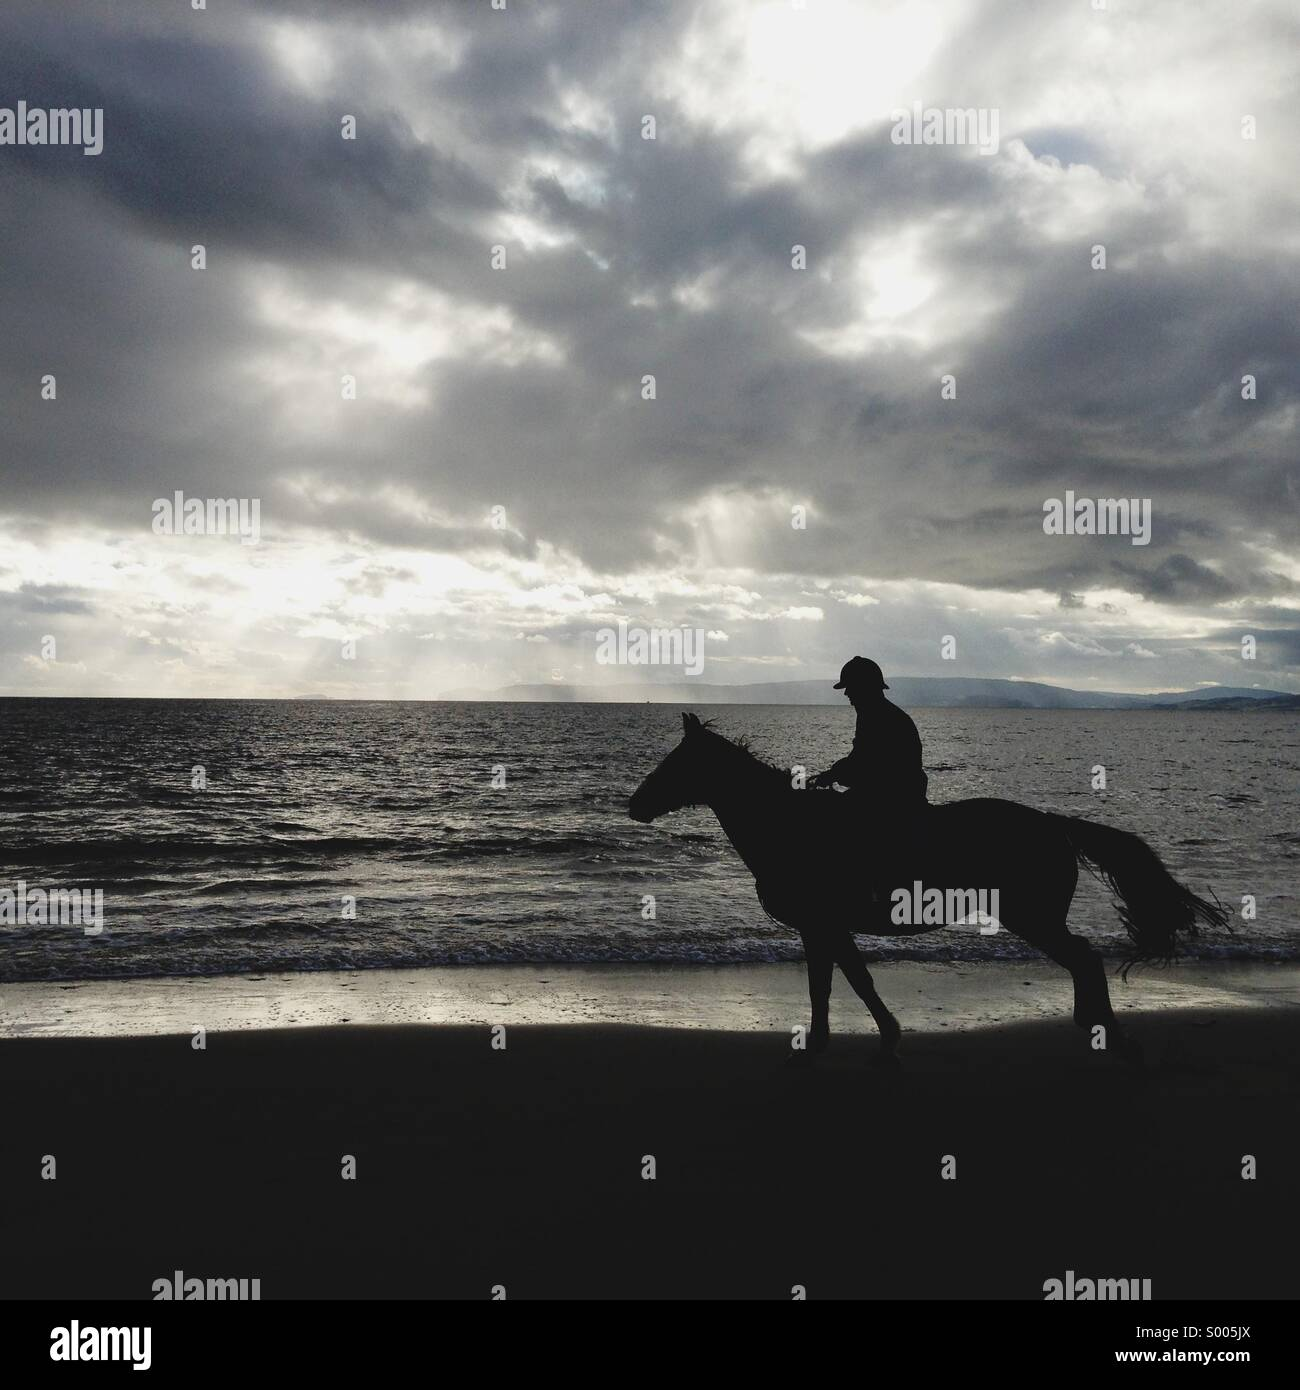 Horse and rider on beach silhouette - Stock Image